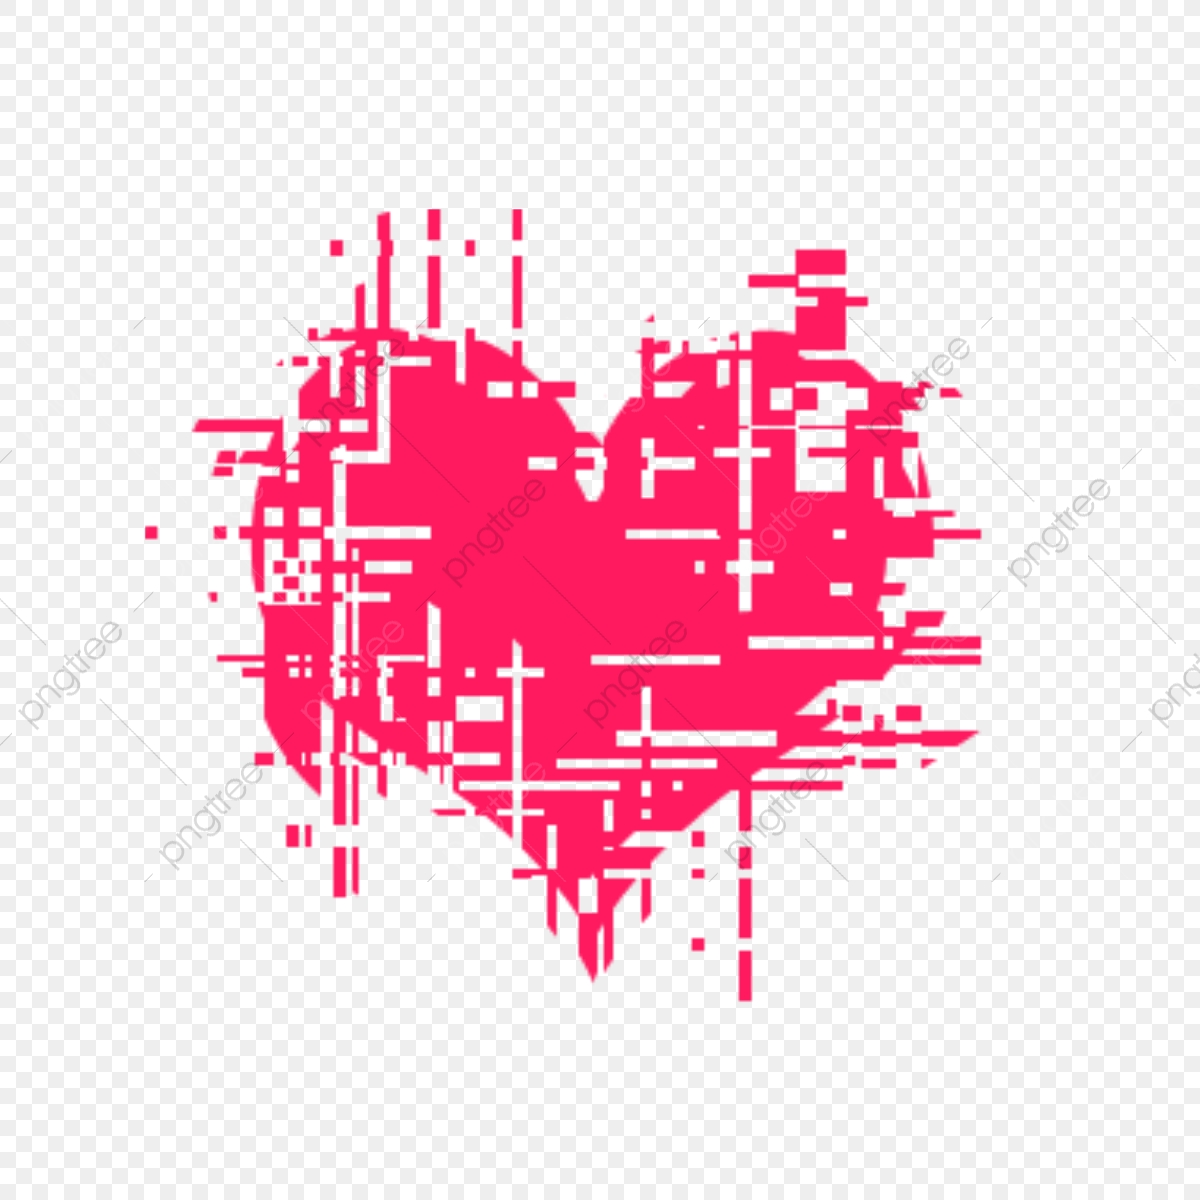 Heart Transparent Background Icon, Heart Png Transparent